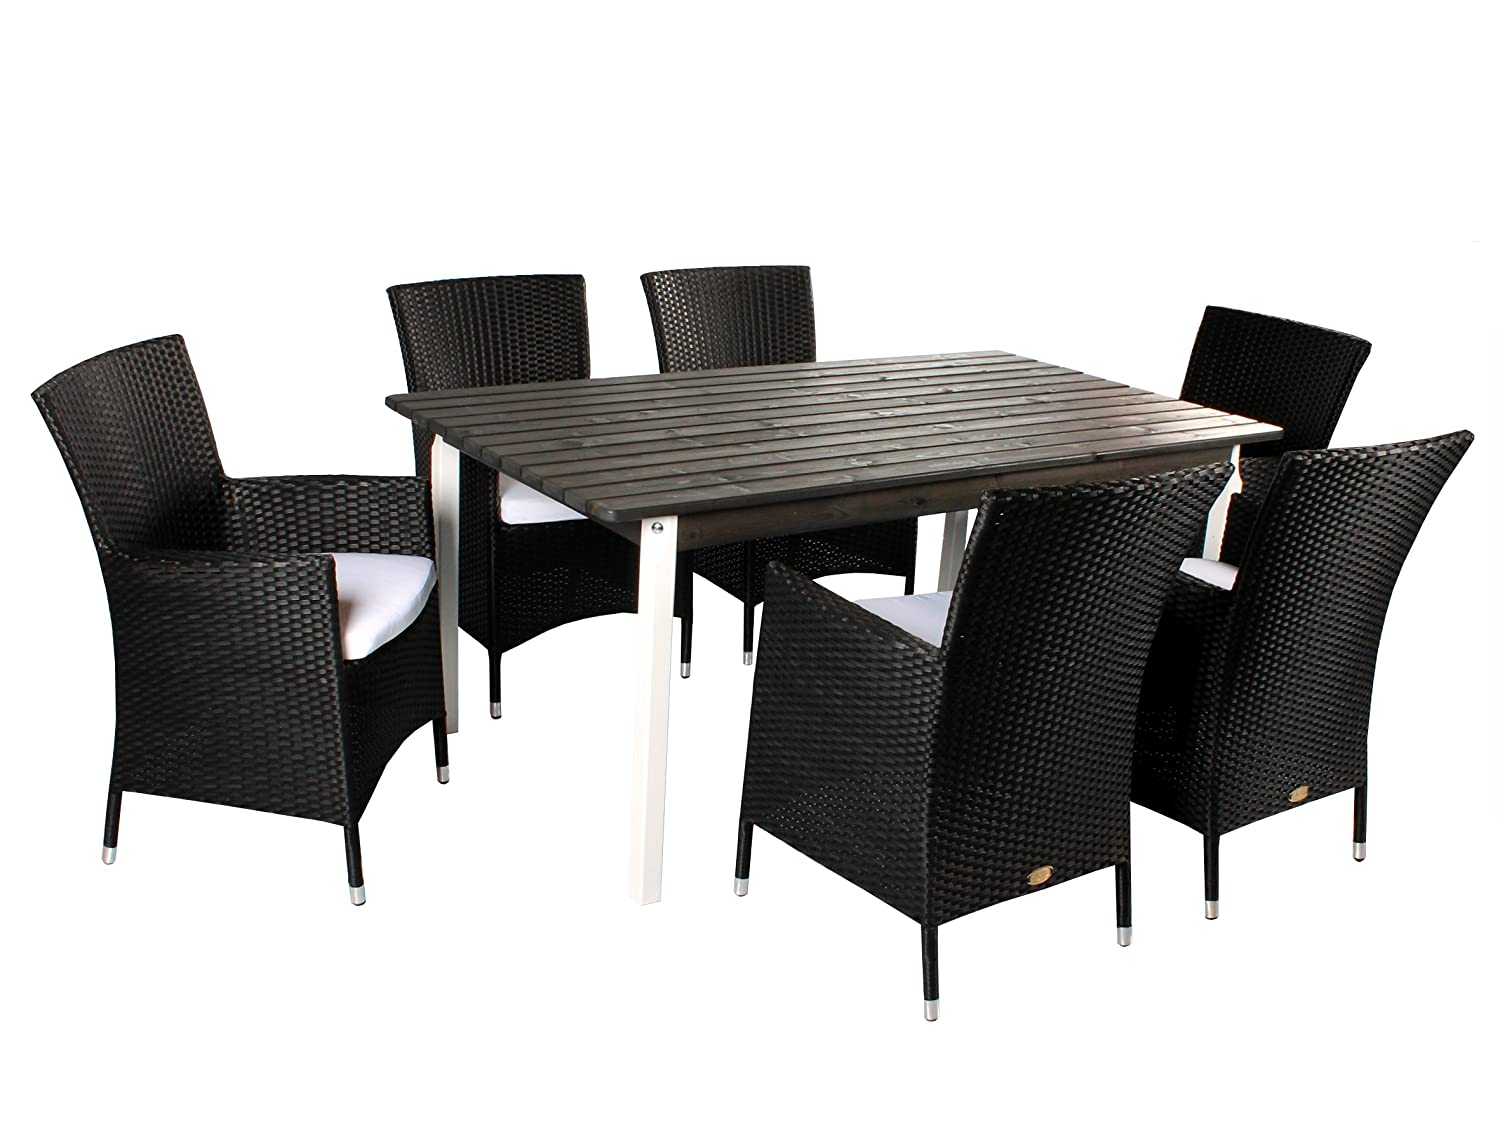 7tlg polyrattan holz sitzgruppe salento sessel und 160er. Black Bedroom Furniture Sets. Home Design Ideas